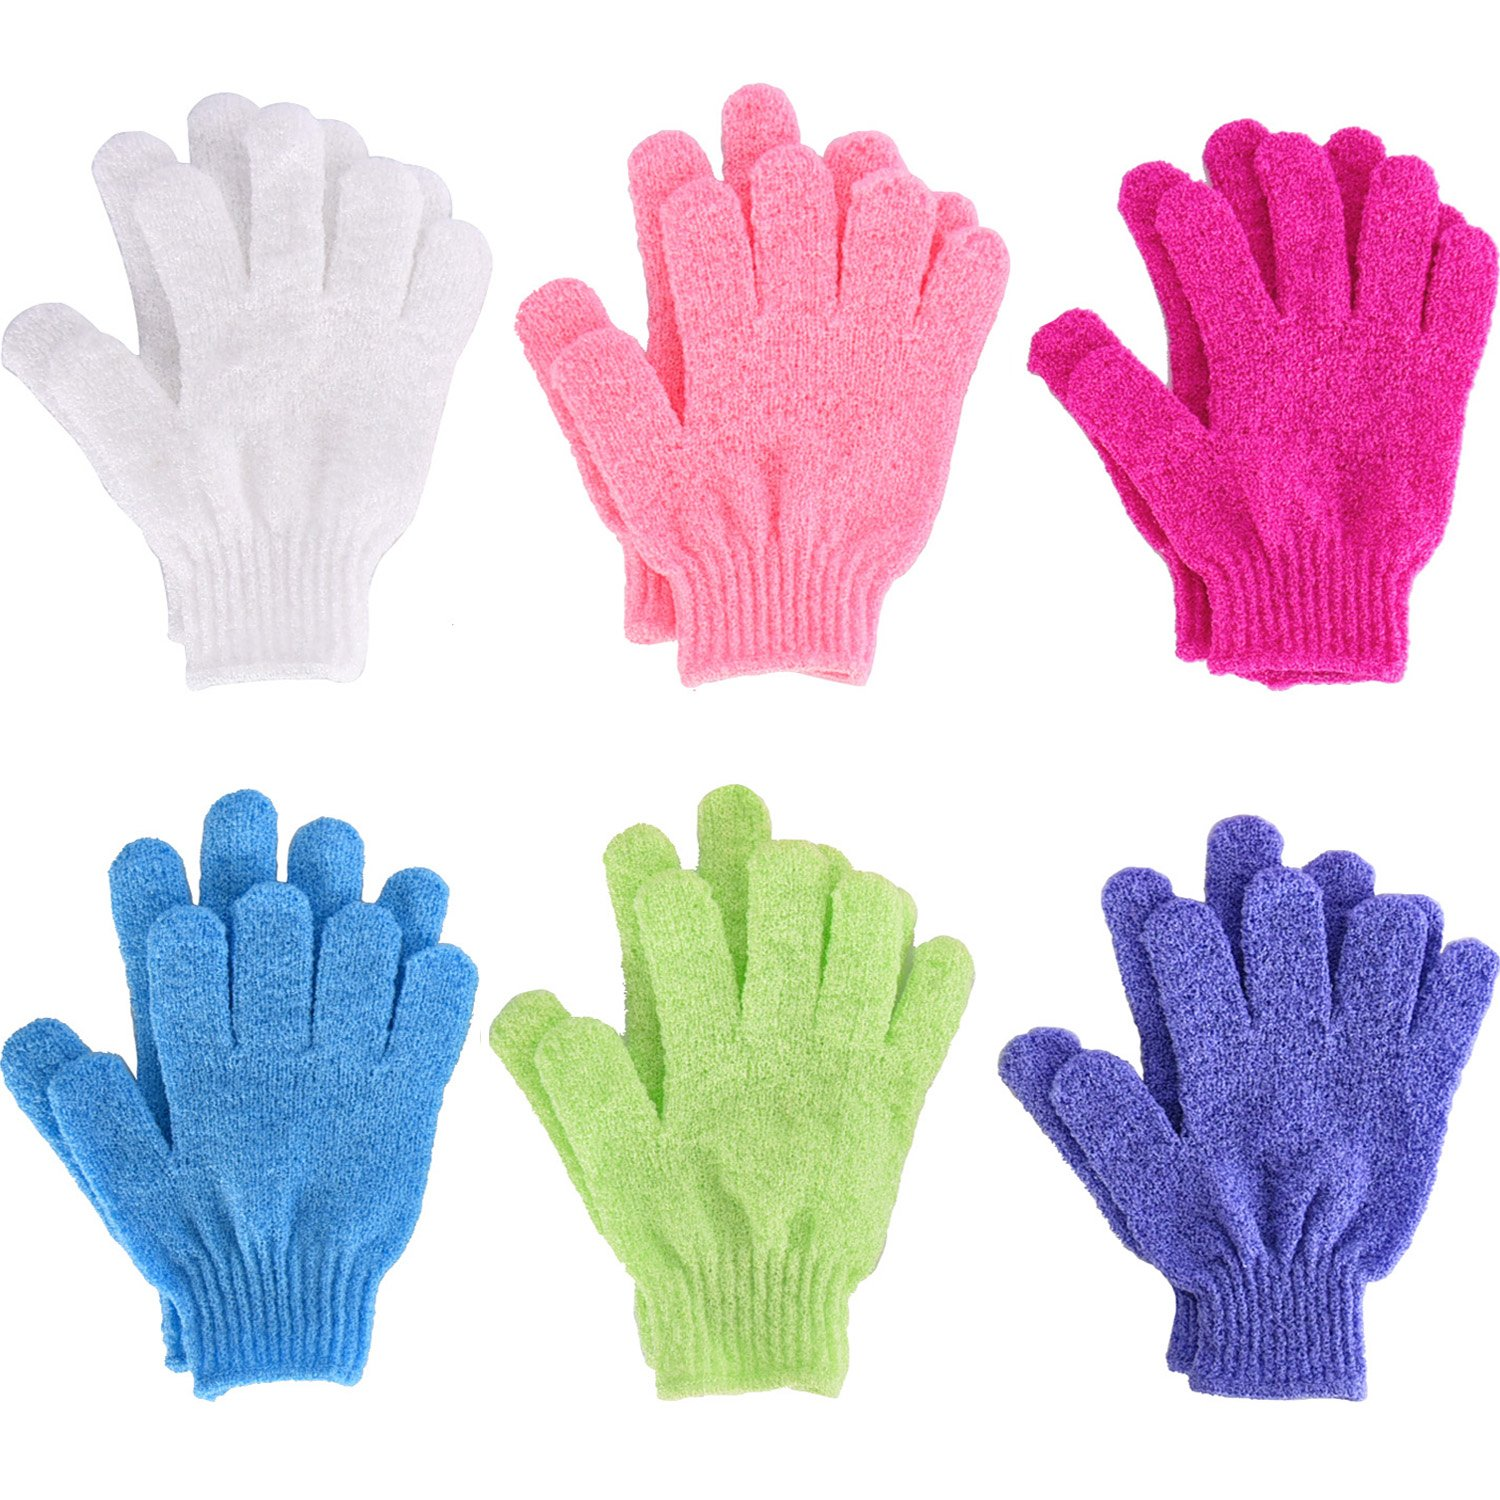 6 Pairs Double Sided Exfoliating Gloves Body Scrubbing Glove Bath Scrubs for Shower, 6 Colors Hotop